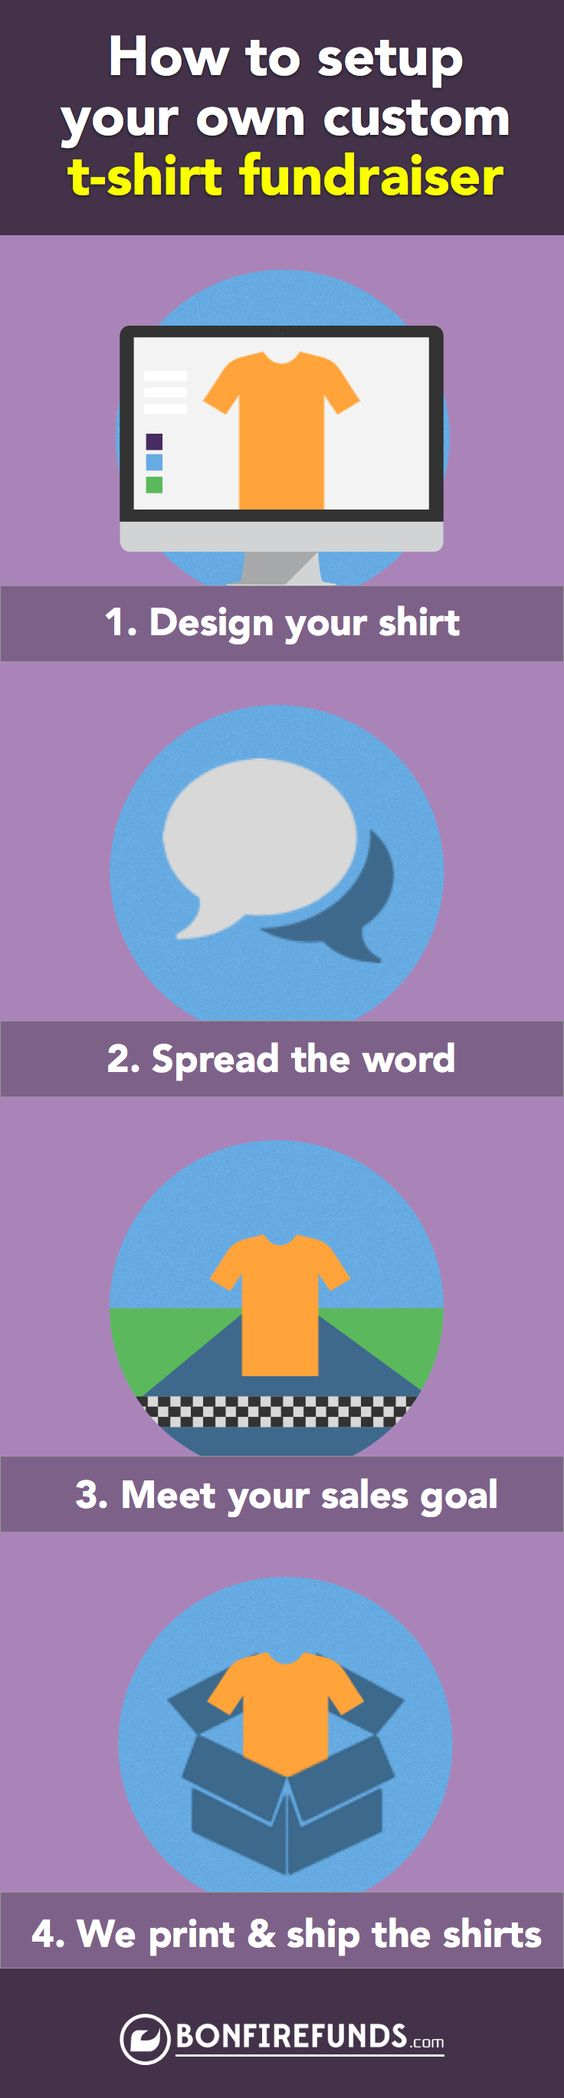 Design your own t-shirt fundraising